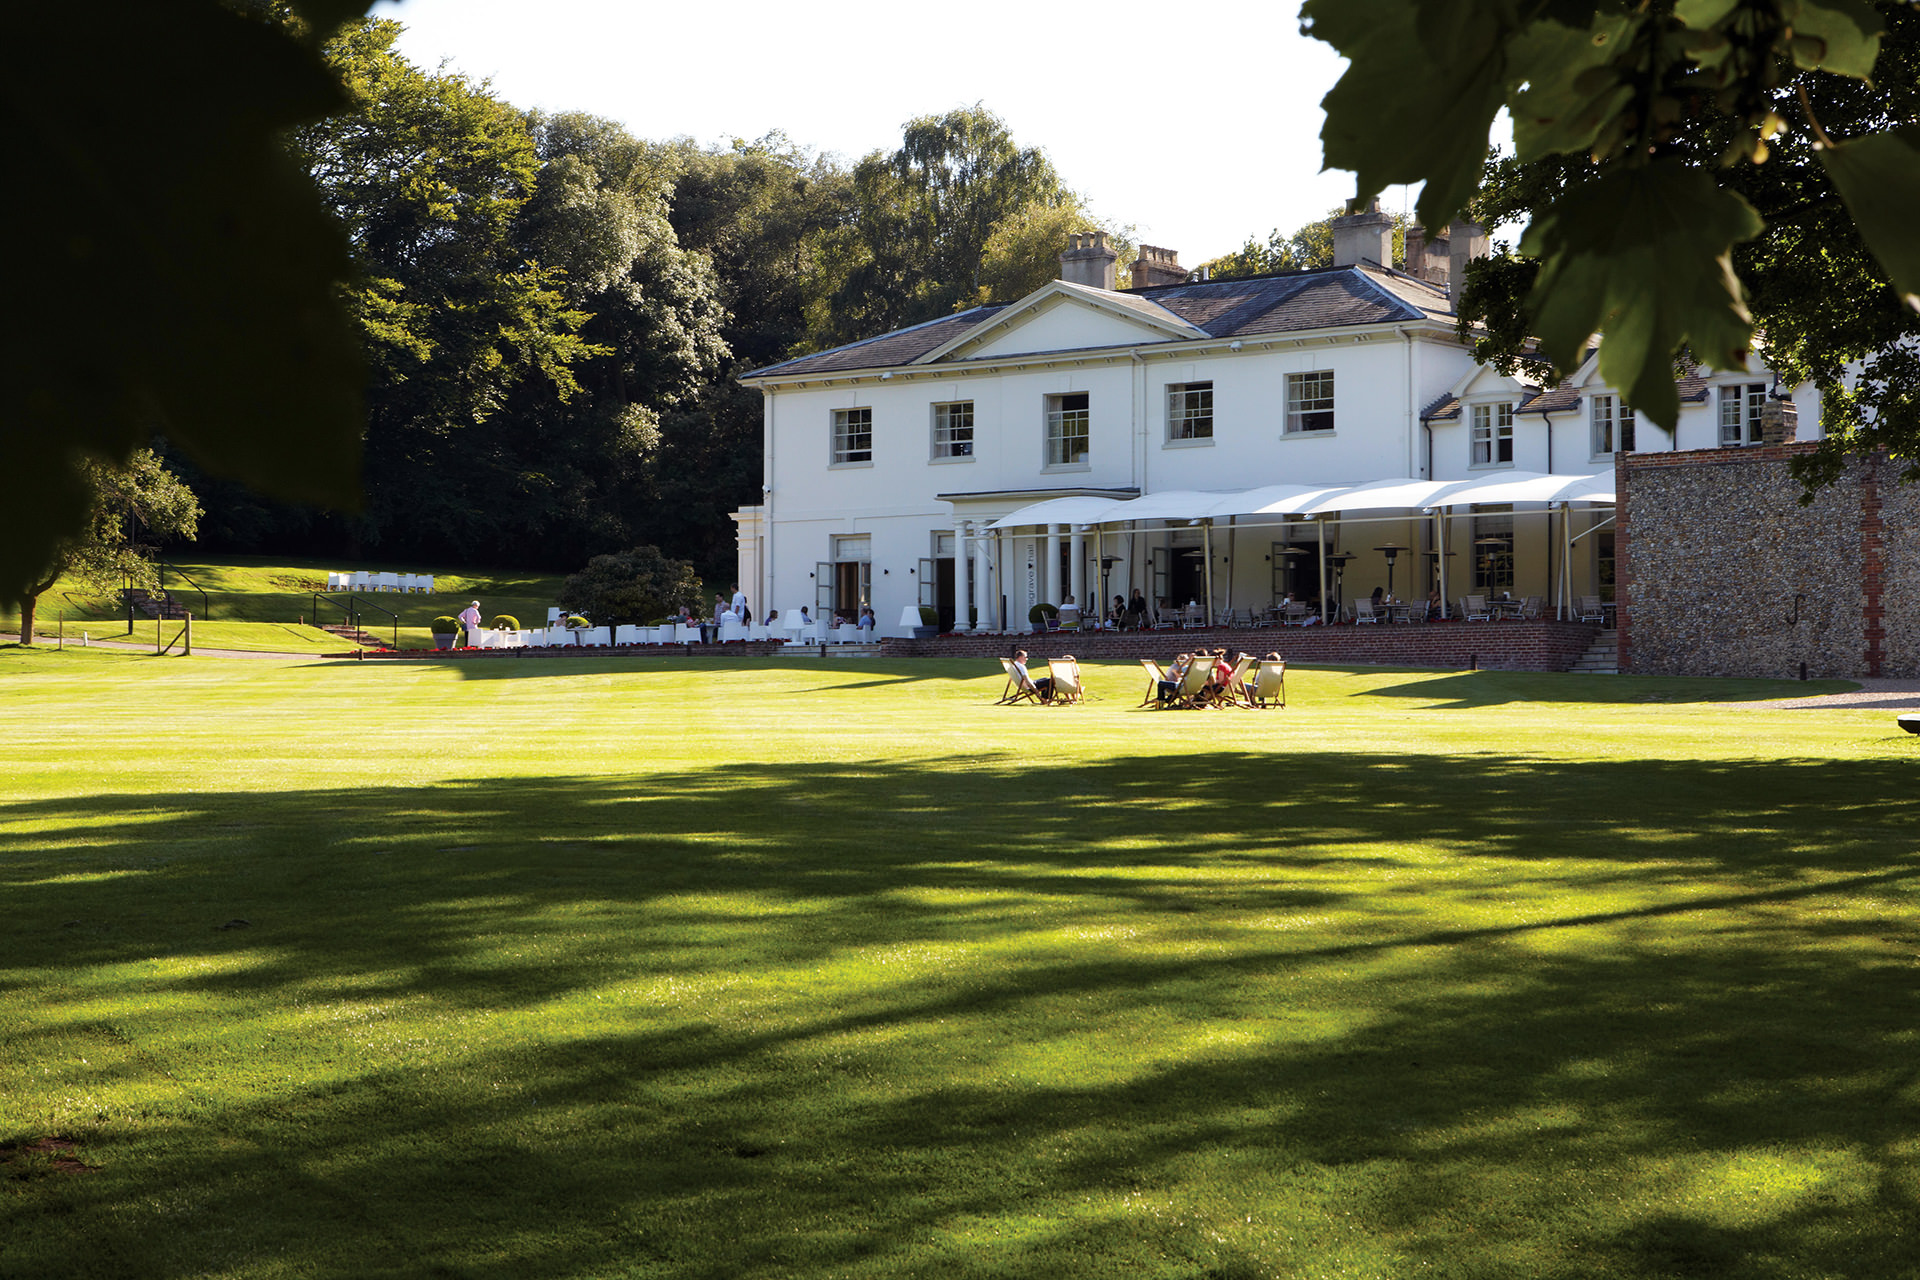 Kesgrave is one of the country's most desirable places